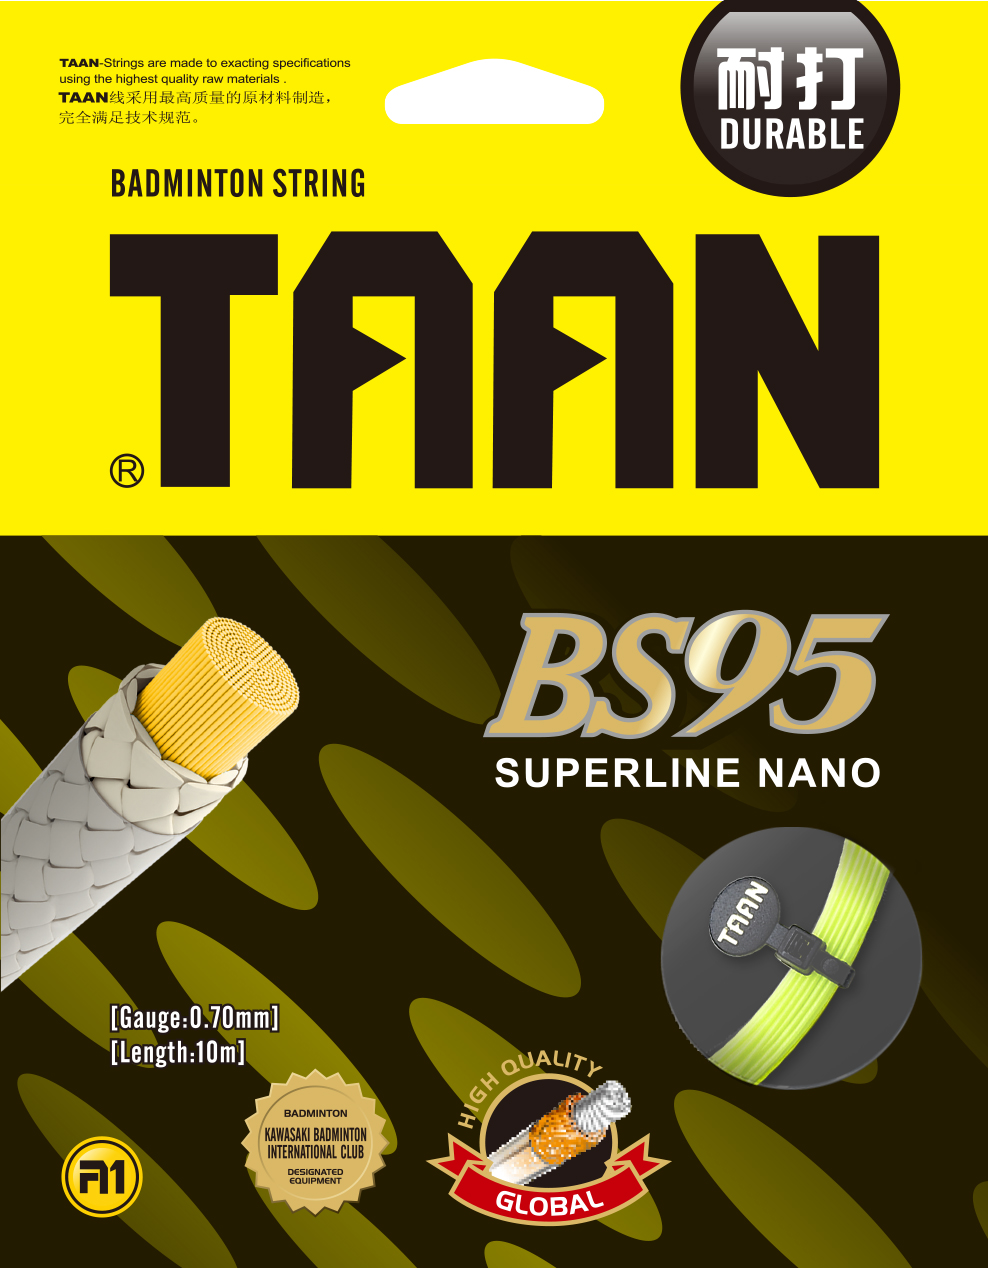 TAAN 1pc BS95 Badminton Strings  Tennis Strings 10m 0.7mm Durable Badminton Strings Superline Nano Strings Good Tension